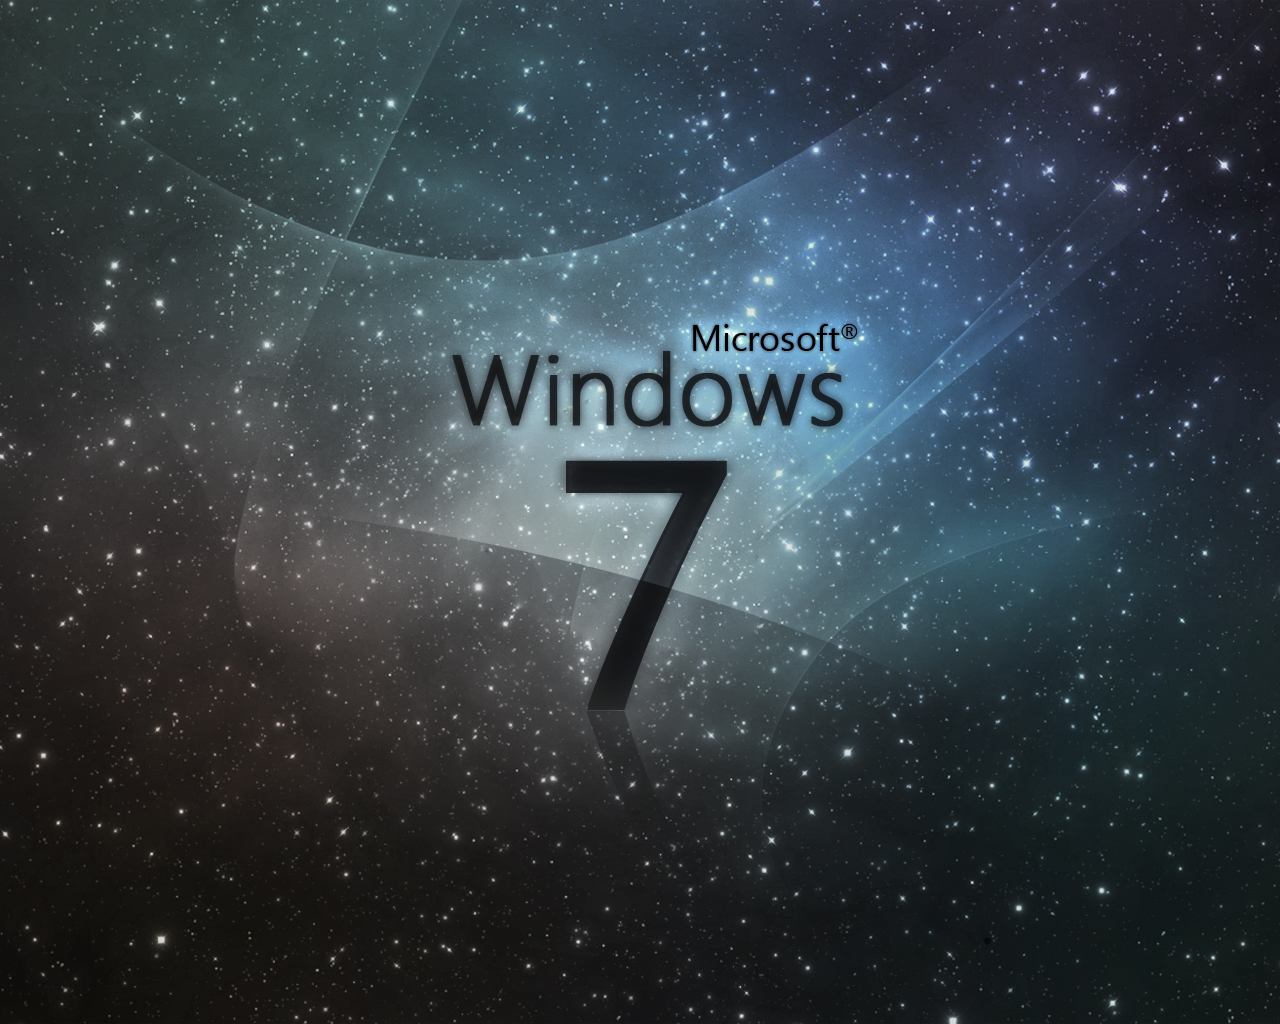 Top 10 Best Wallpapers Windows 7 1280x1024